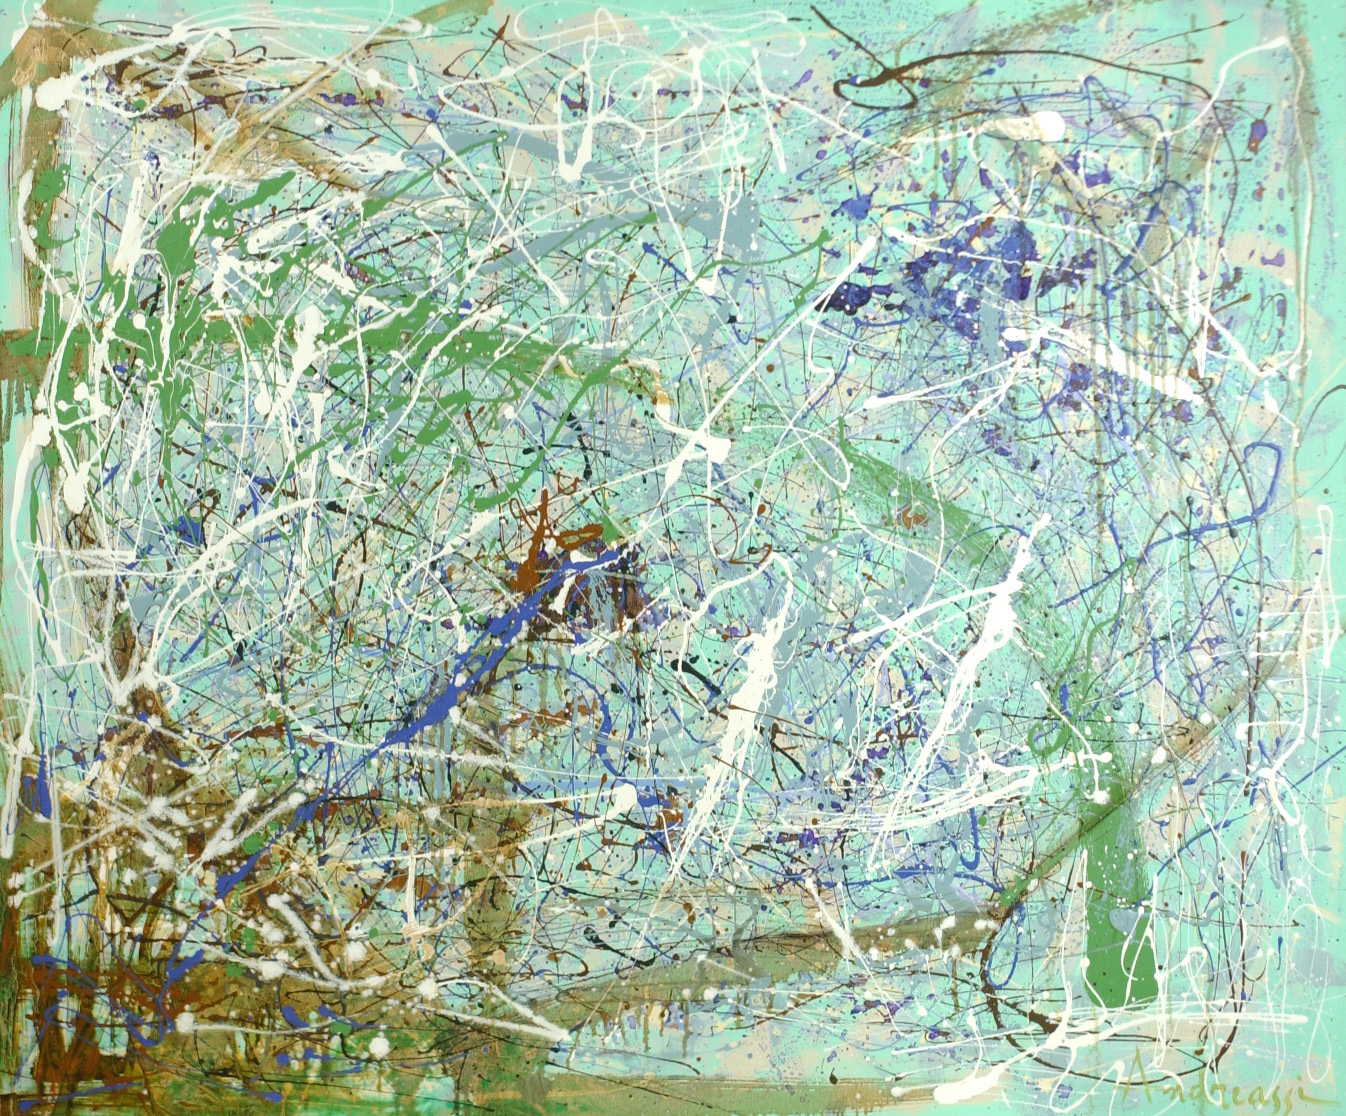 """Tácio Andreassi """" <i>Abstrato</i><a style='float:right' href='https://www3.al.sp.gov.br/repositorio/noticia/03-2008/M-Pollock-TacioAndreassiAbstrato_ok.jpg' target=_blank><img src='/_img/material-file-download-white.png' width='14px' alt='Clique para baixar a imagem'></a>"""